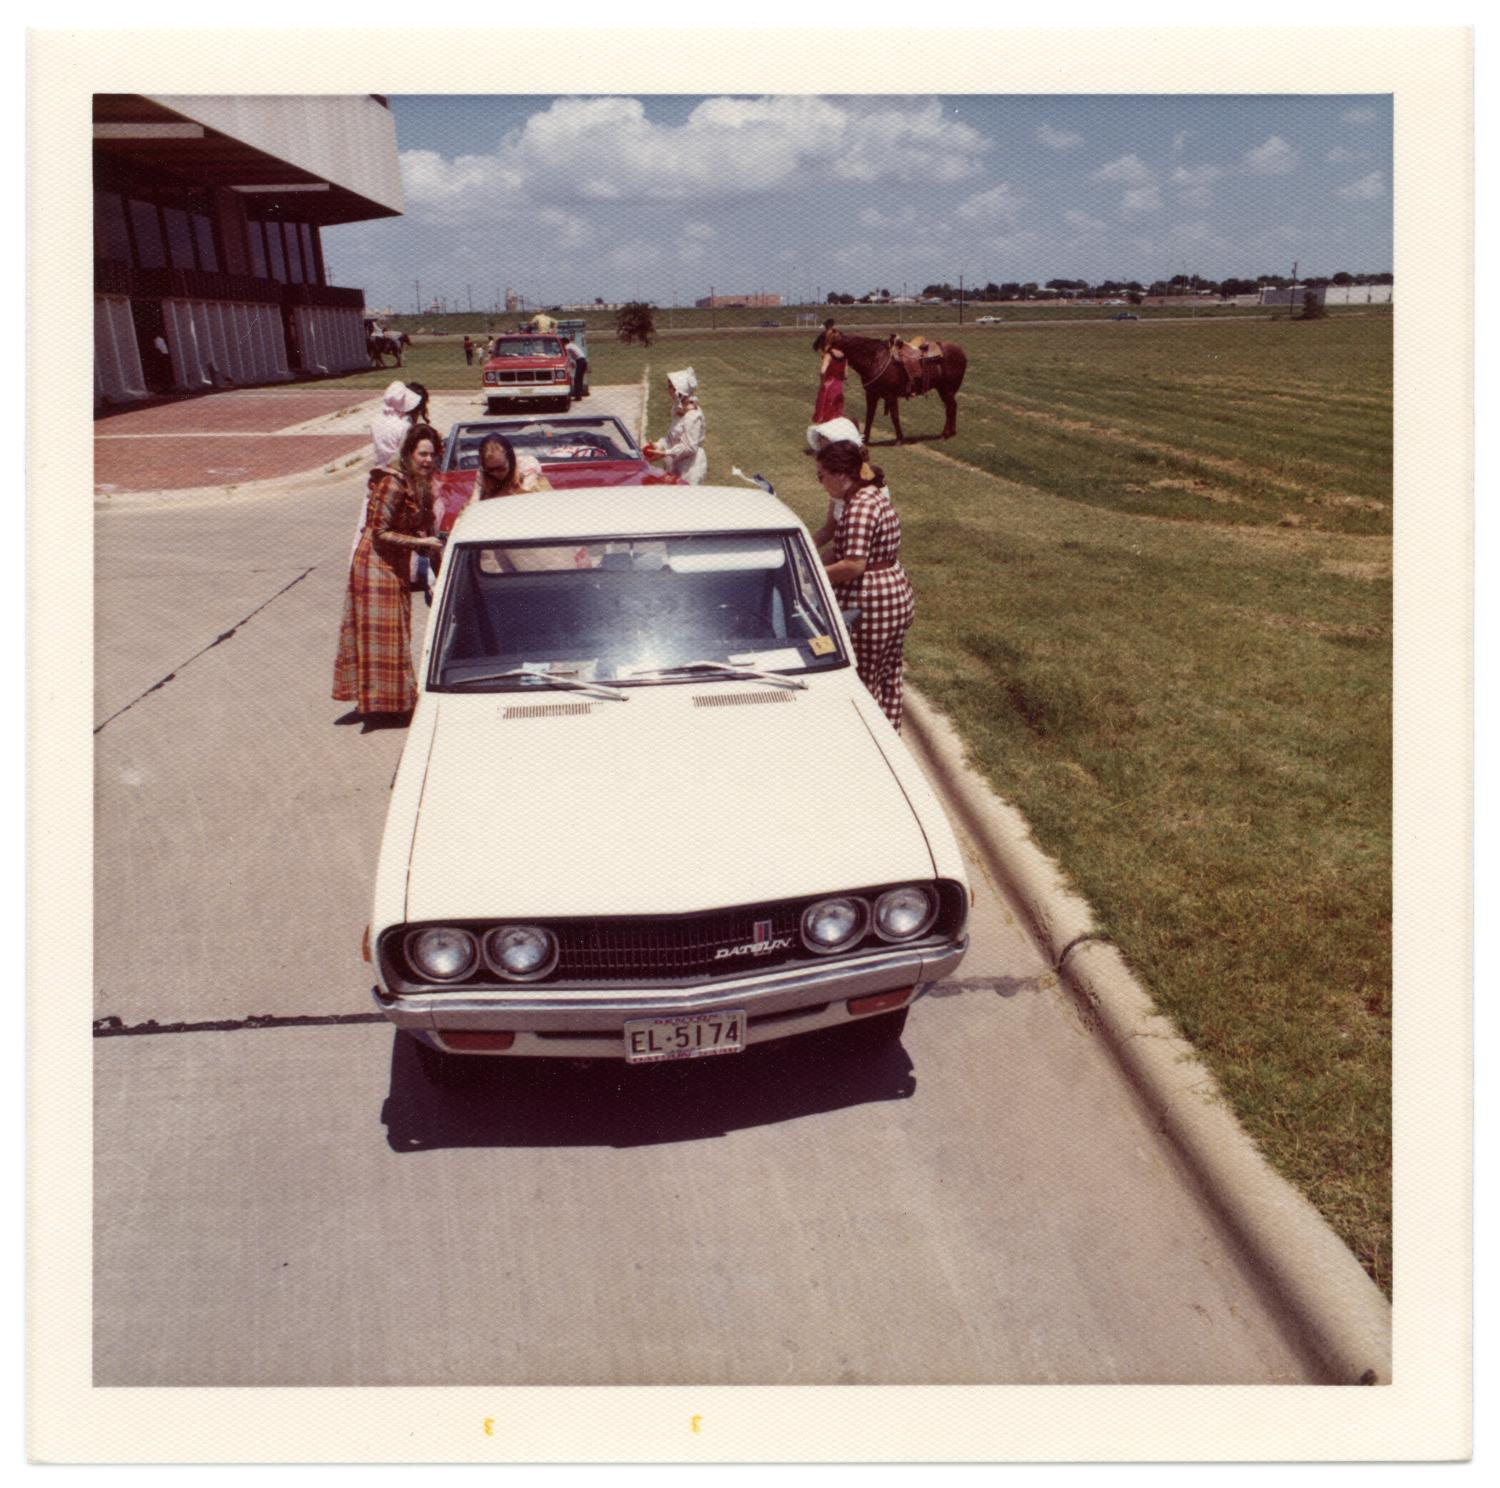 Richardson Centennial Parade, Photograph of cars parked in a line waiting to participate in the Centennial parade. A group of women wearing costumes are gathered around the back of a white Datsun car. Behind the white car, there are women dressed in costume gathered around a red convertible. In the background, there is a woman and horse on a grass lot, and people beside a red truck.,